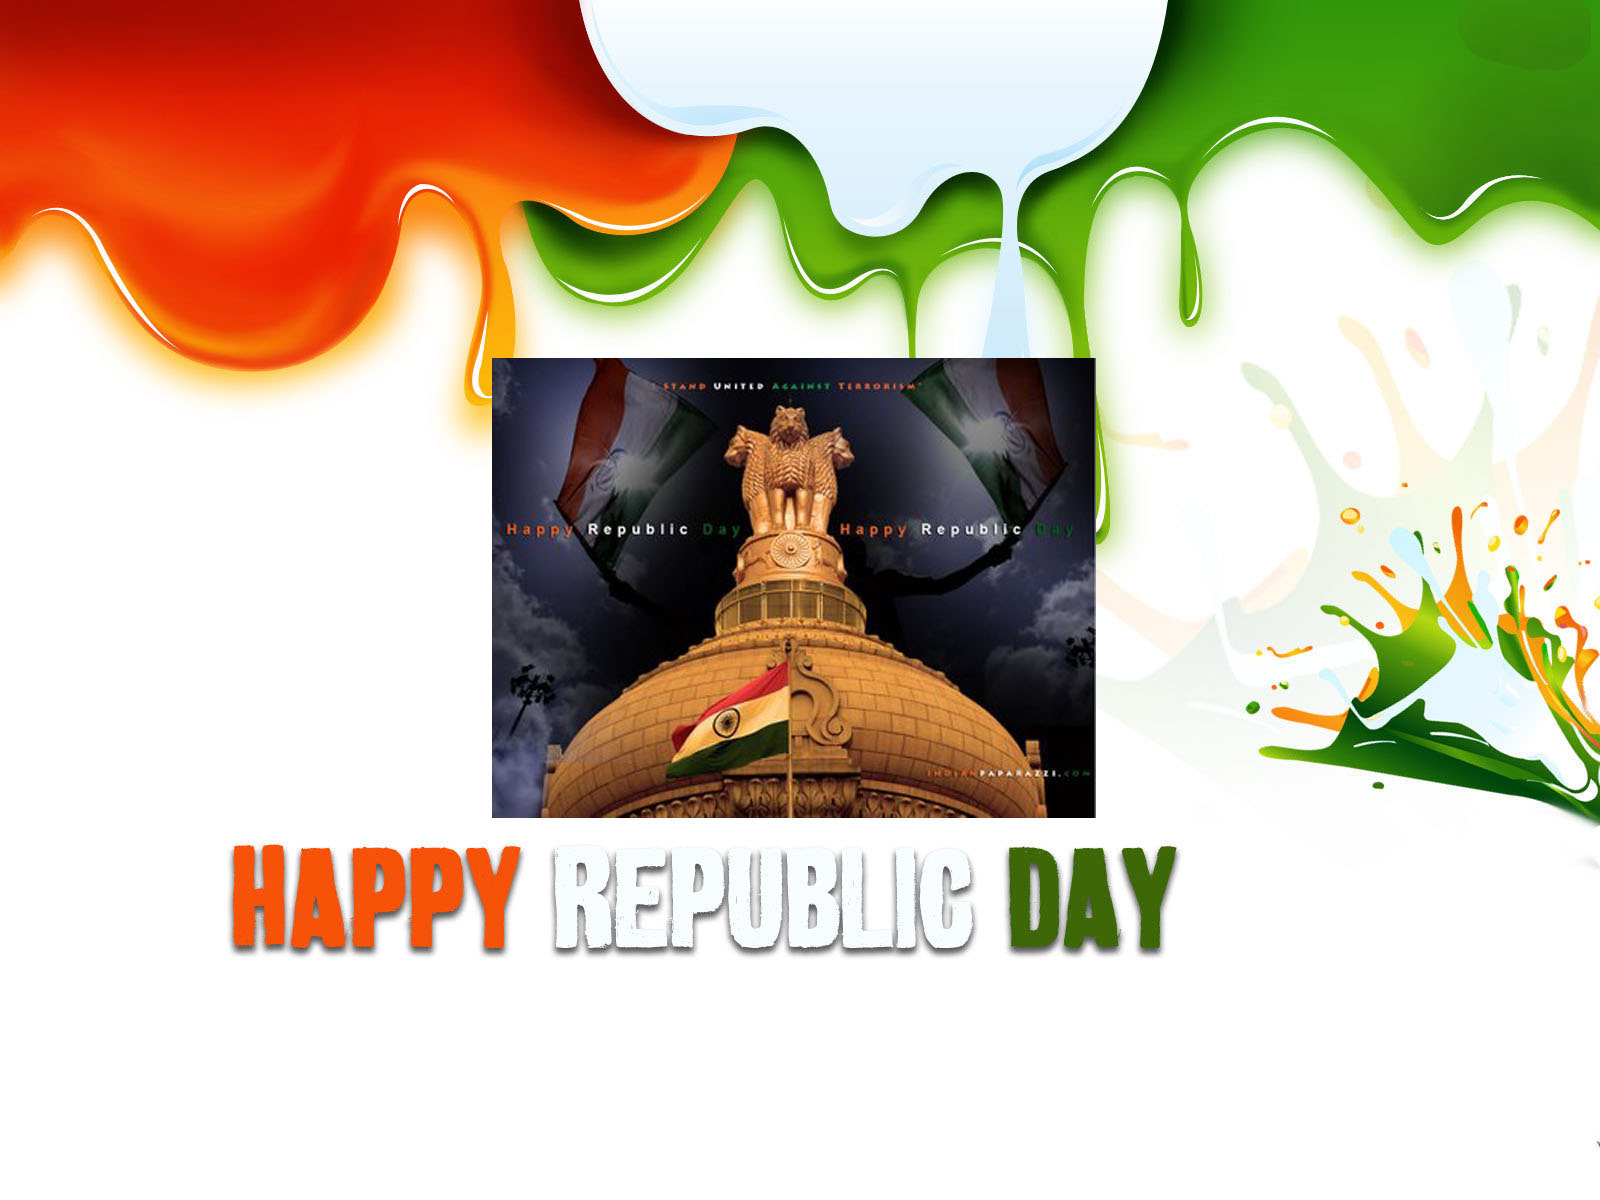 http://3.bp.blogspot.com/-oUAtIuy8g84/UP4ipSDk-ZI/AAAAAAAAISA/sNaPqhJLY5A/s1600/happy+republicday+hd+pic.jpg